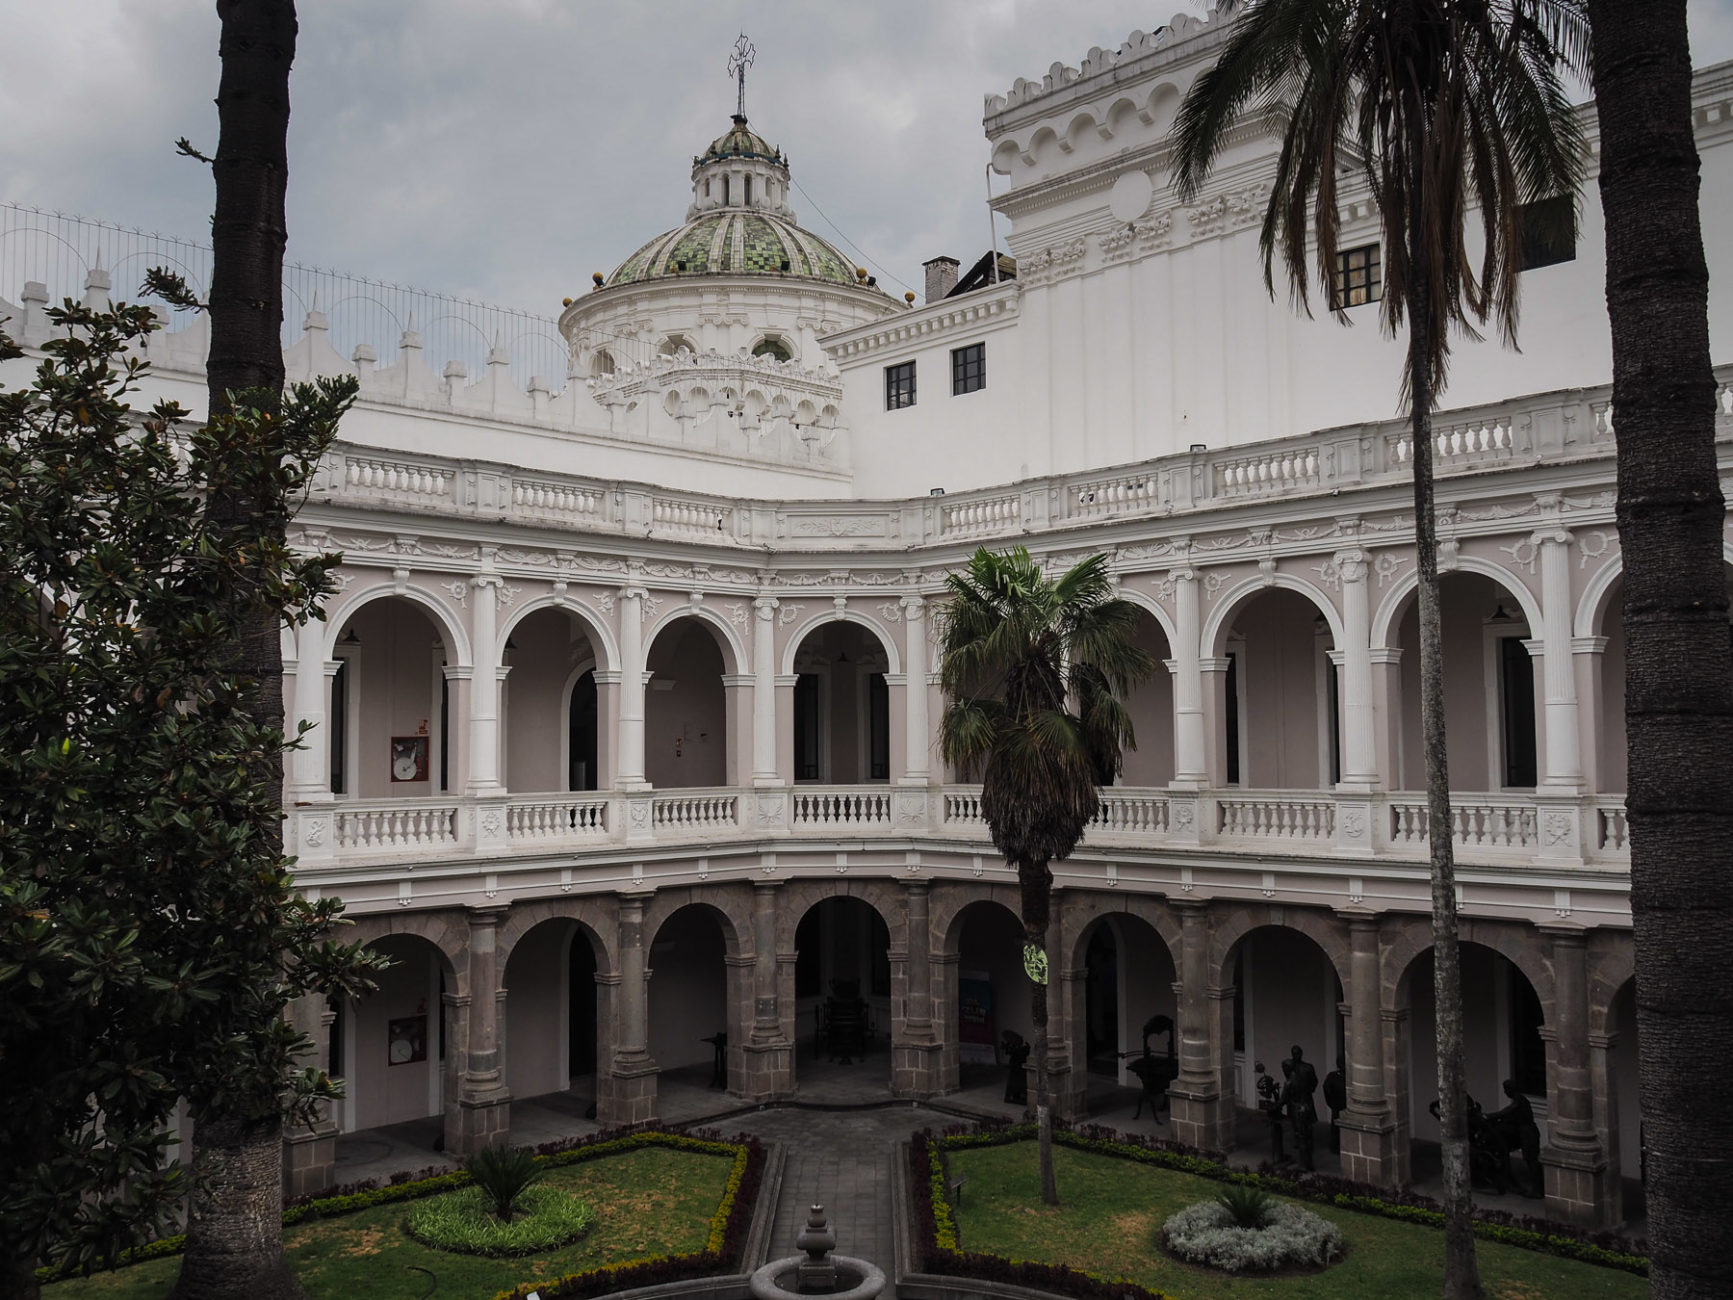 Klosterinnenhof in Quito